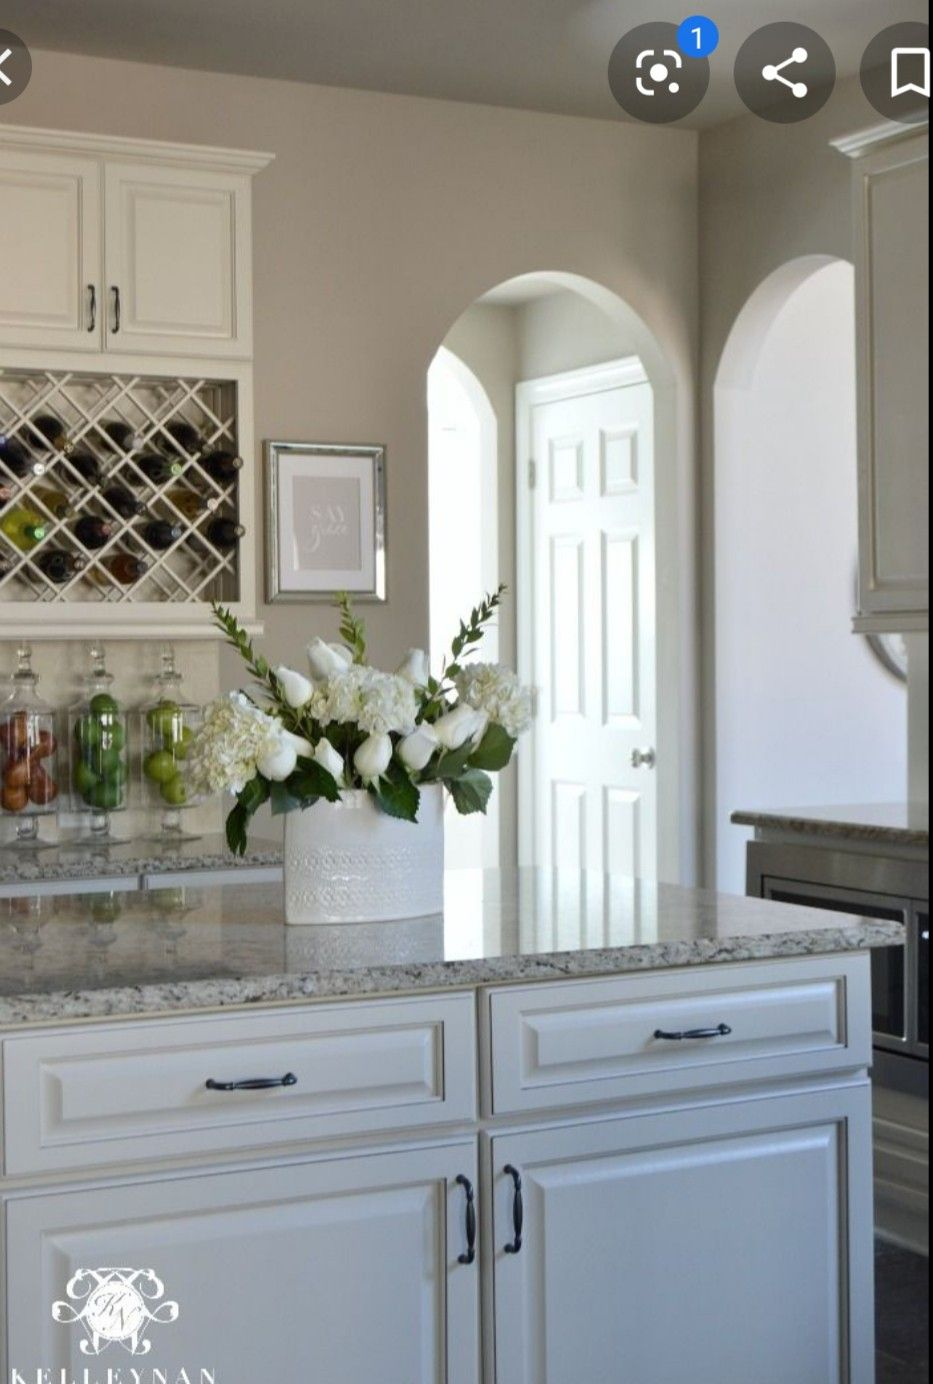 Greige Walls White Cabinets In 2020 Painted Kitchen Cabinets Colors Greige Kitchen Neutral Kitchen Colors